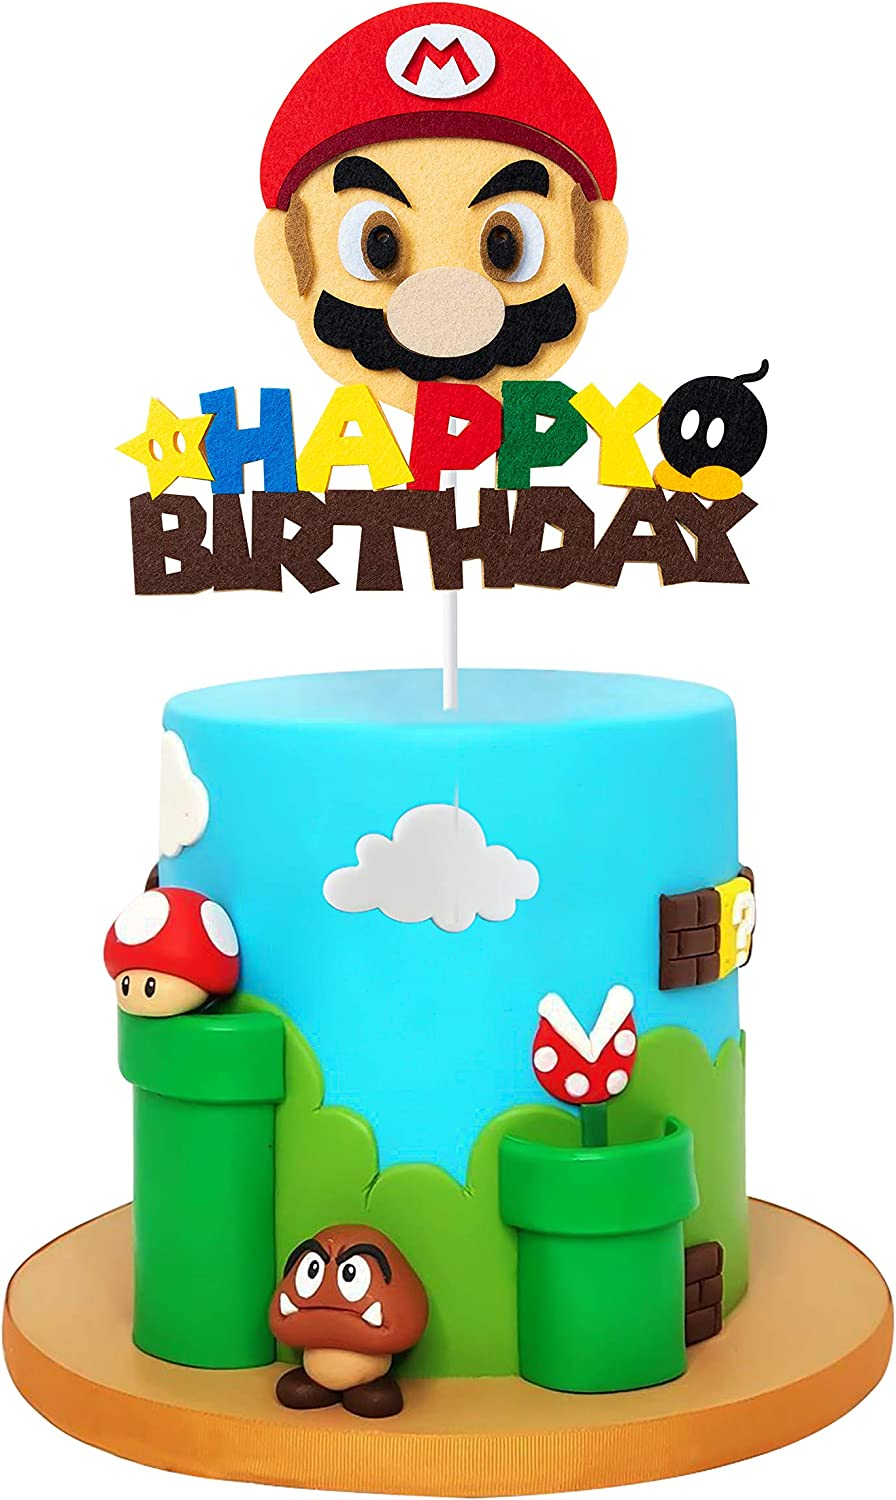 Mario Brother Birthday Cake Toppers Themed Birthday Party Favor Cupcakes Topper Video Game Birthday Decoration Baby Shower Wario Party Supplies Cakes Deserts Fruits Accessories Photo booth